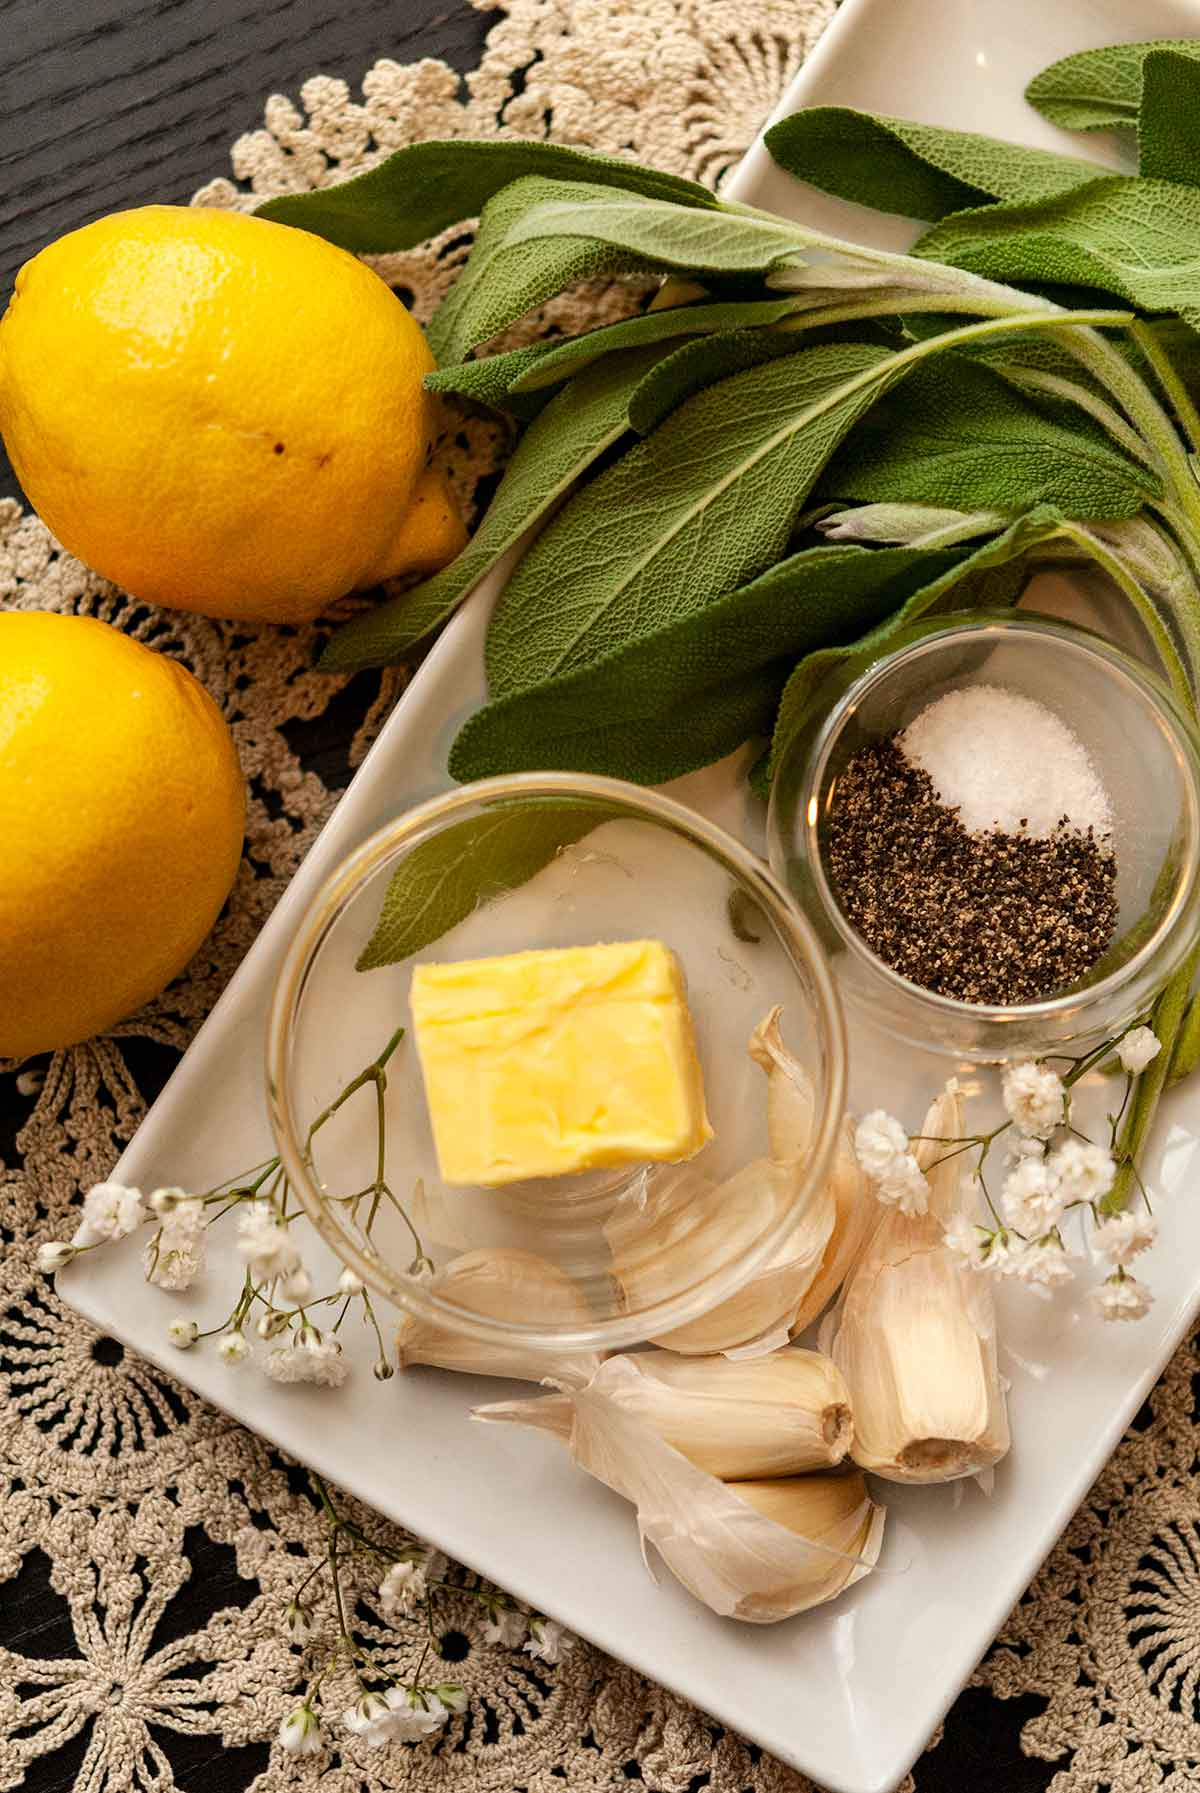 butter, garlic, spices, sage and lemons on a table cloth with a few scattered flowers.